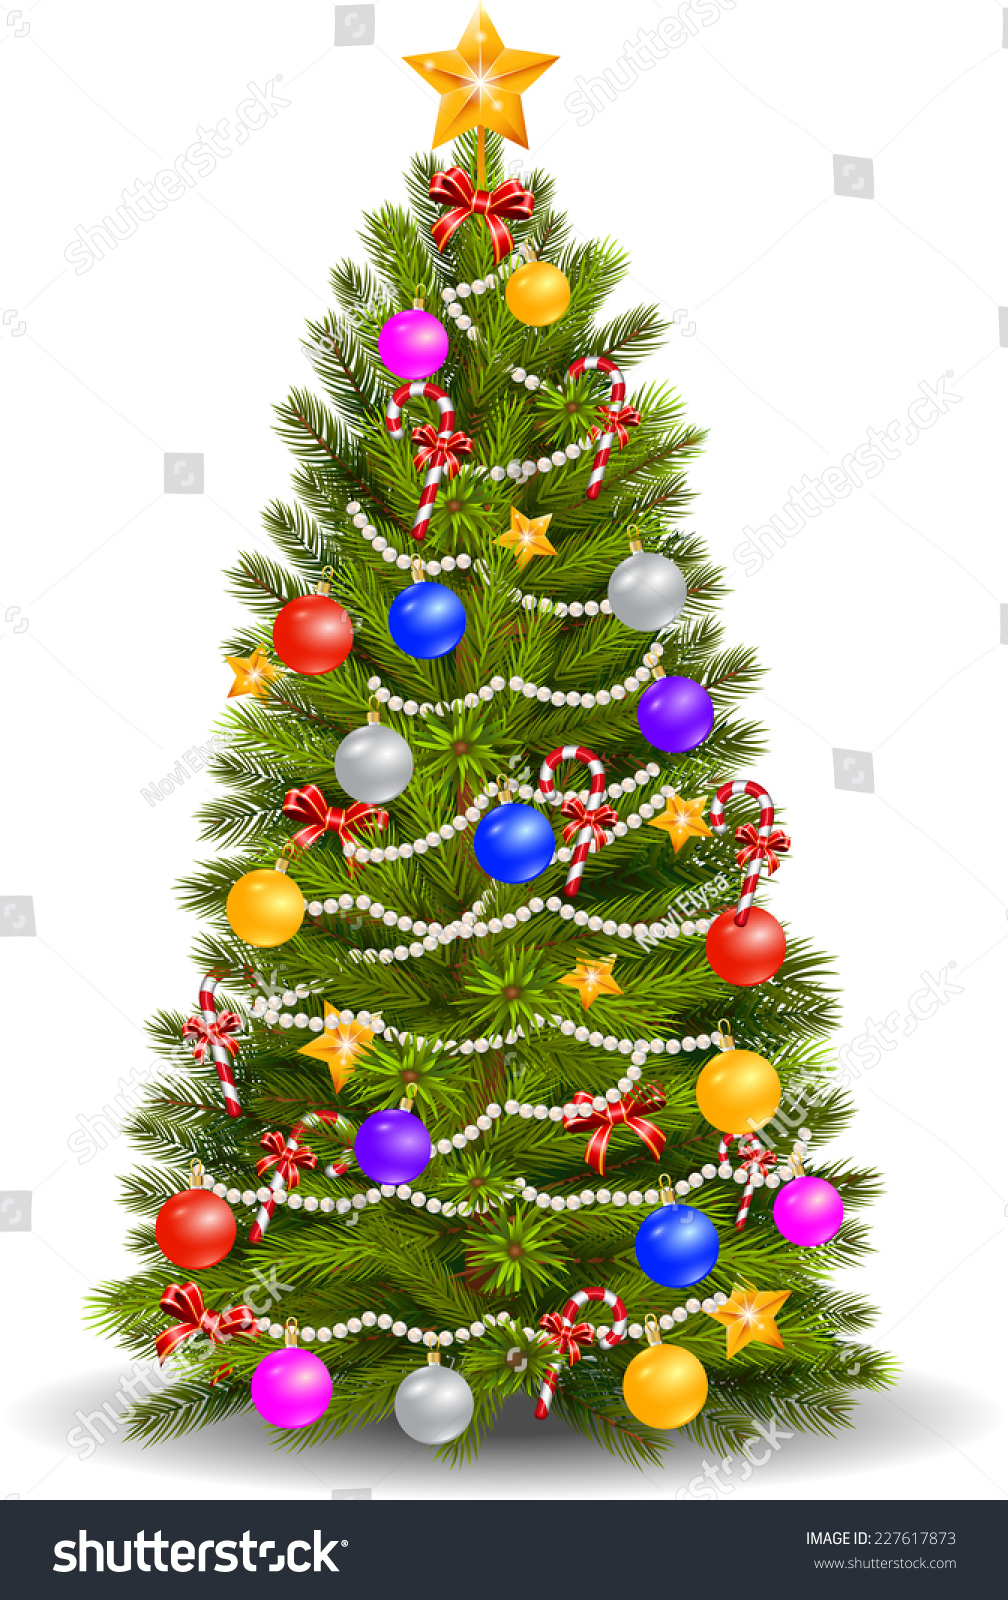 Christmas Tree With Colorful Ornaments Stock Photo ...